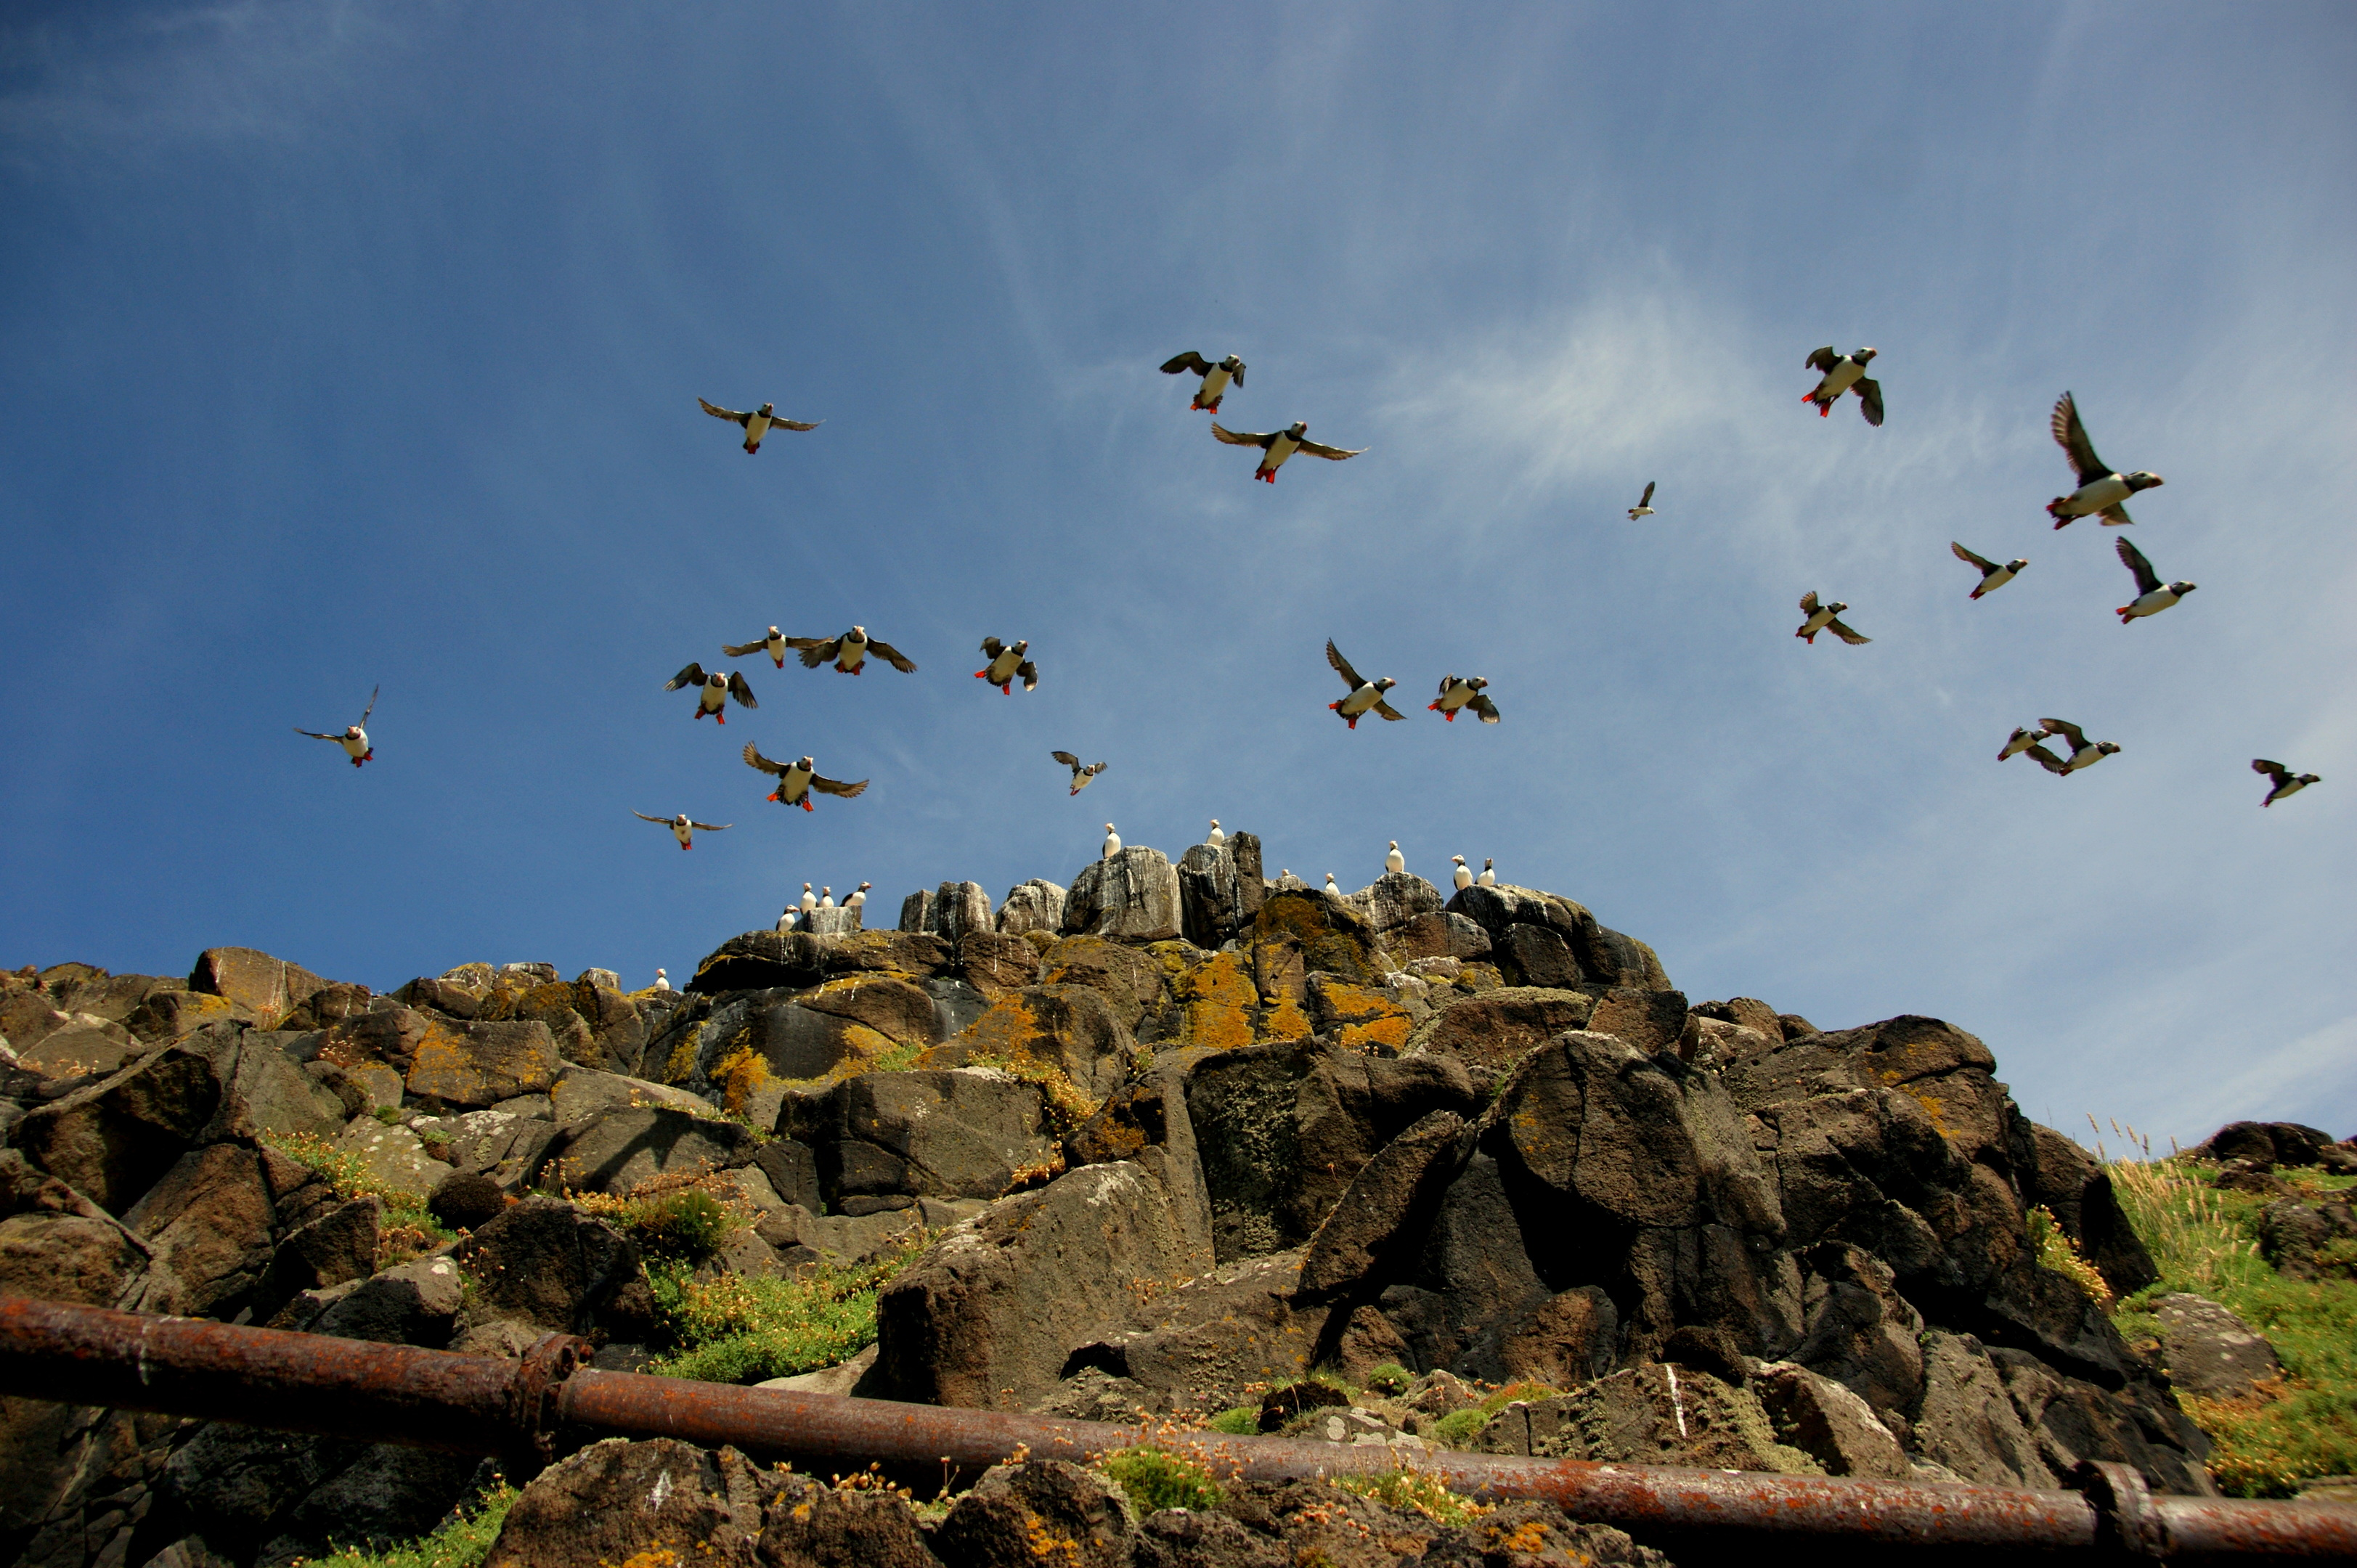 The Isle of May is home to many species of seabird